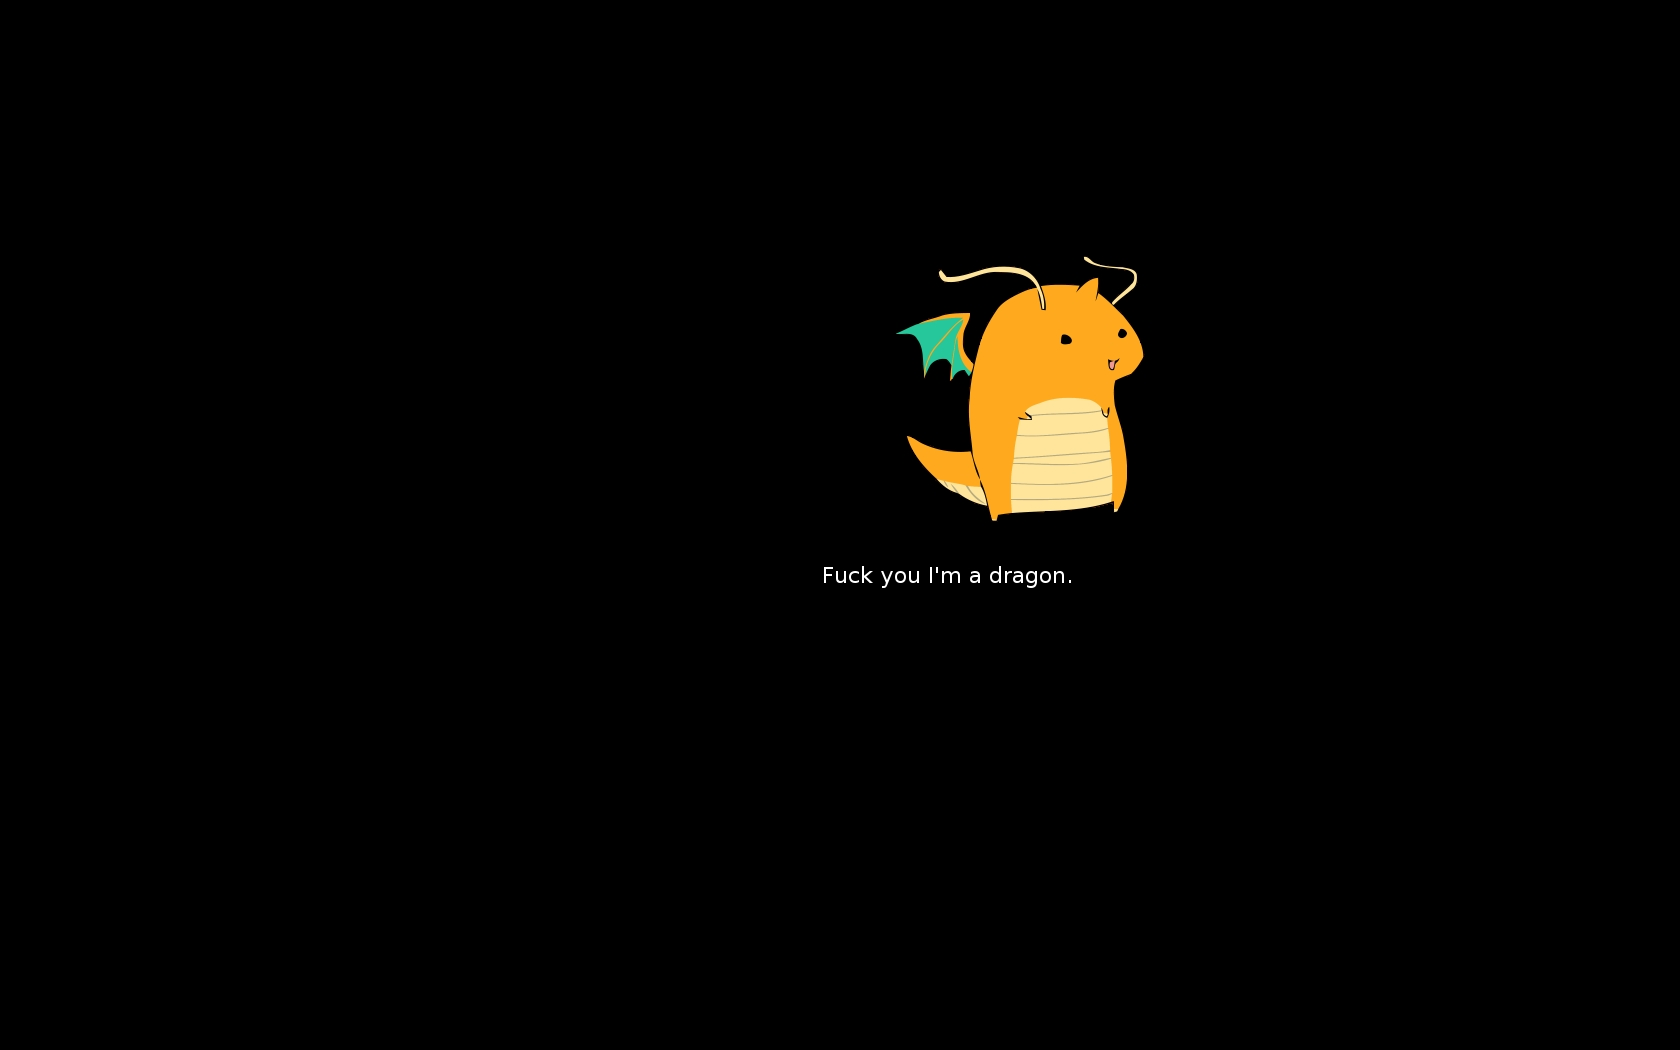 dragon funny twitter background share funny twitter background 1680x1050